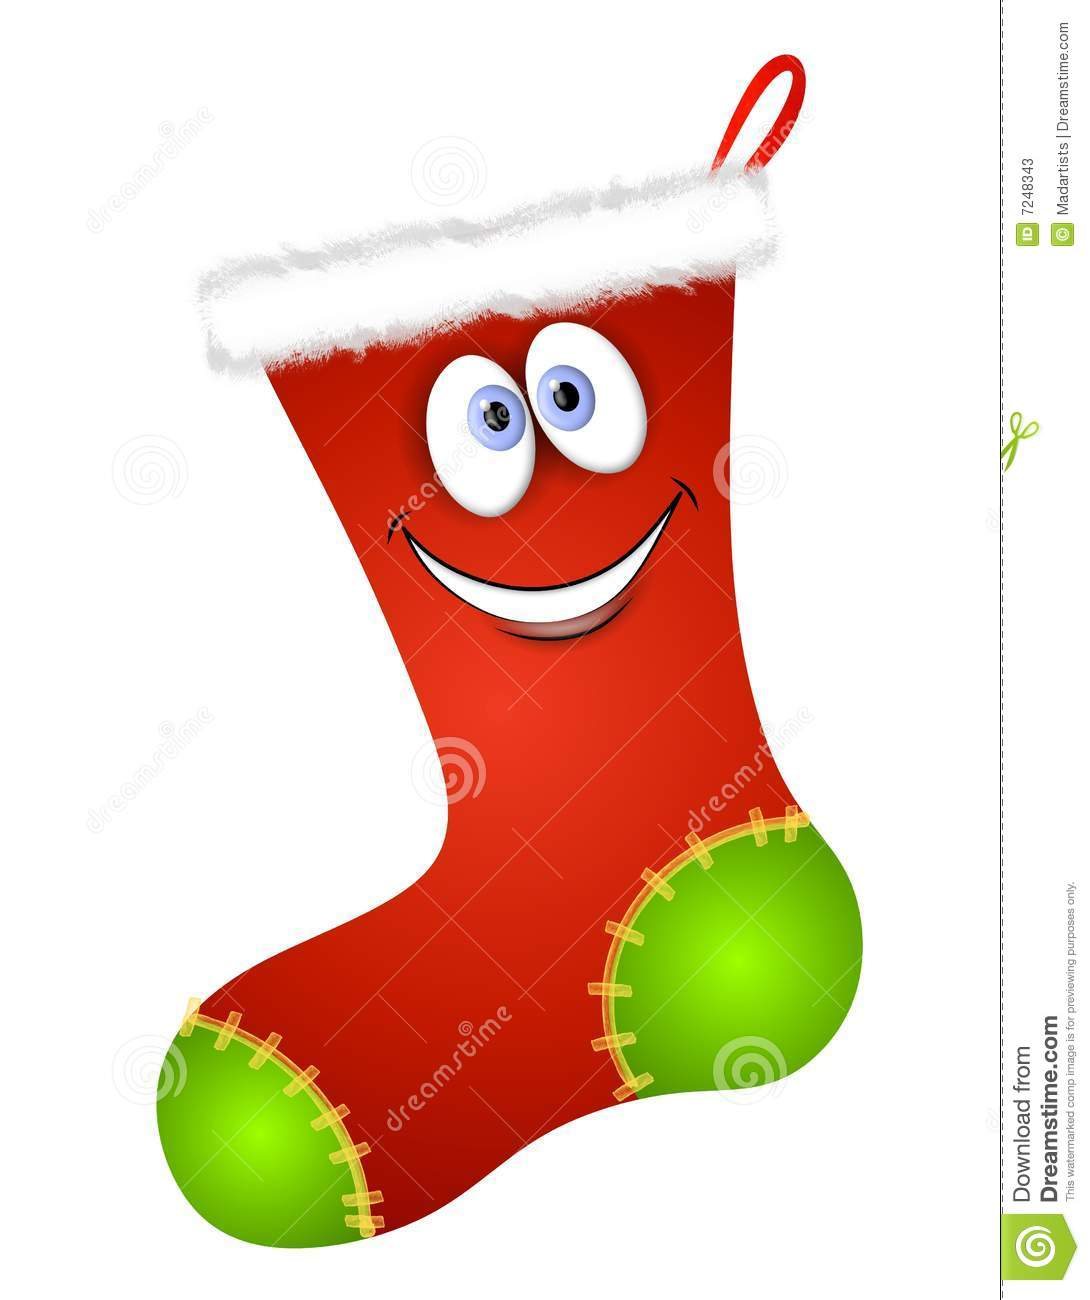 Christmas Stockings Cartoon.Cartoon Christmas Stocking Stock Illustration Illustration